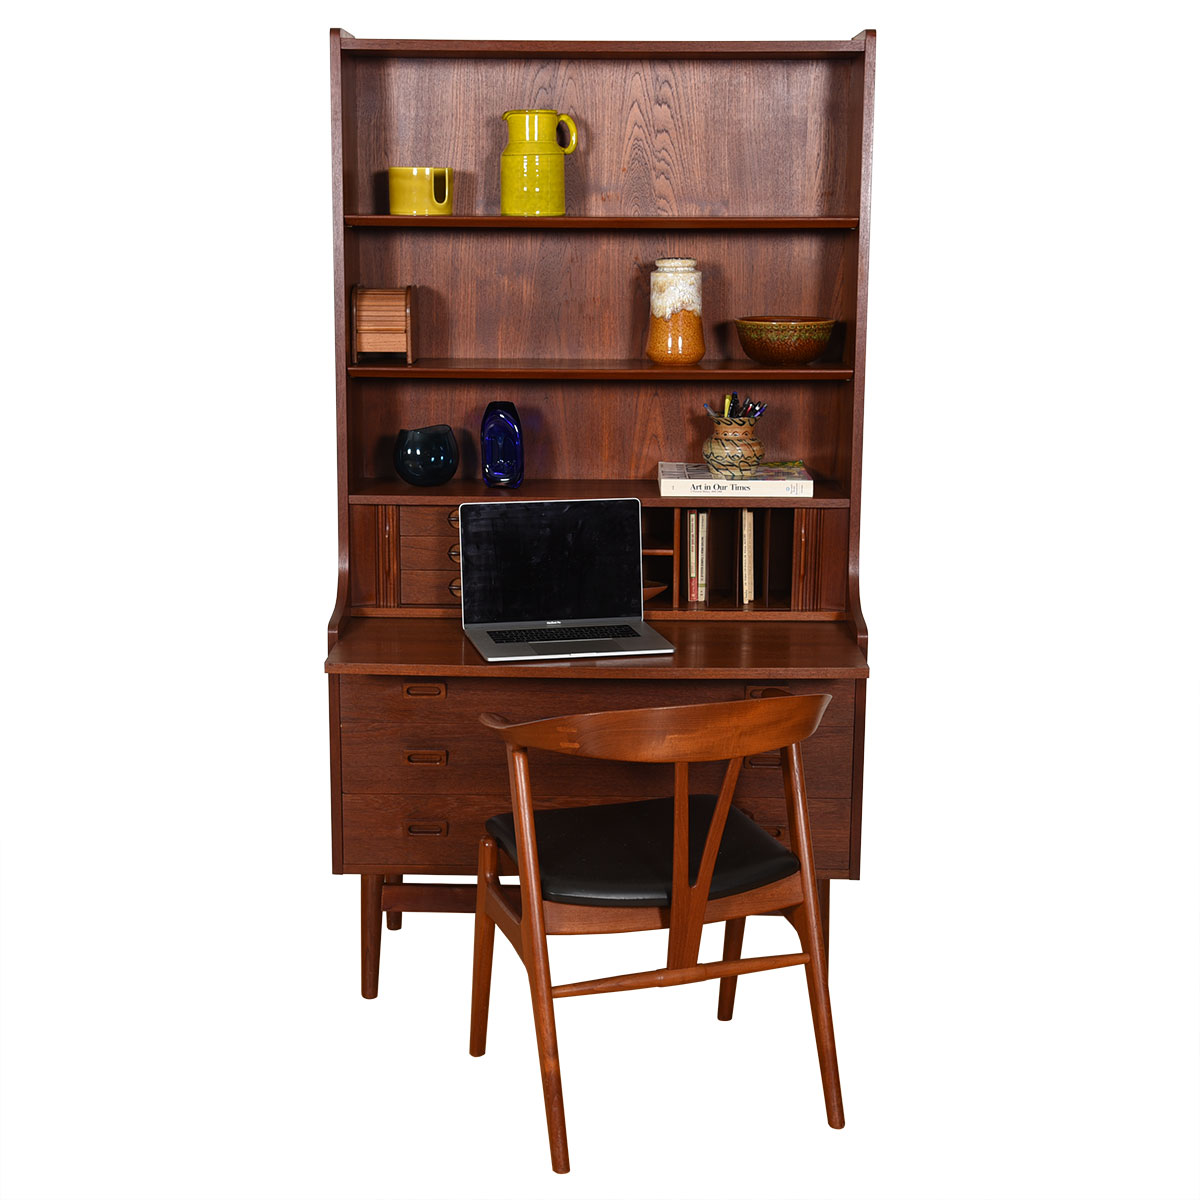 Danish Modern Teak Bookcase / Display / Secretary